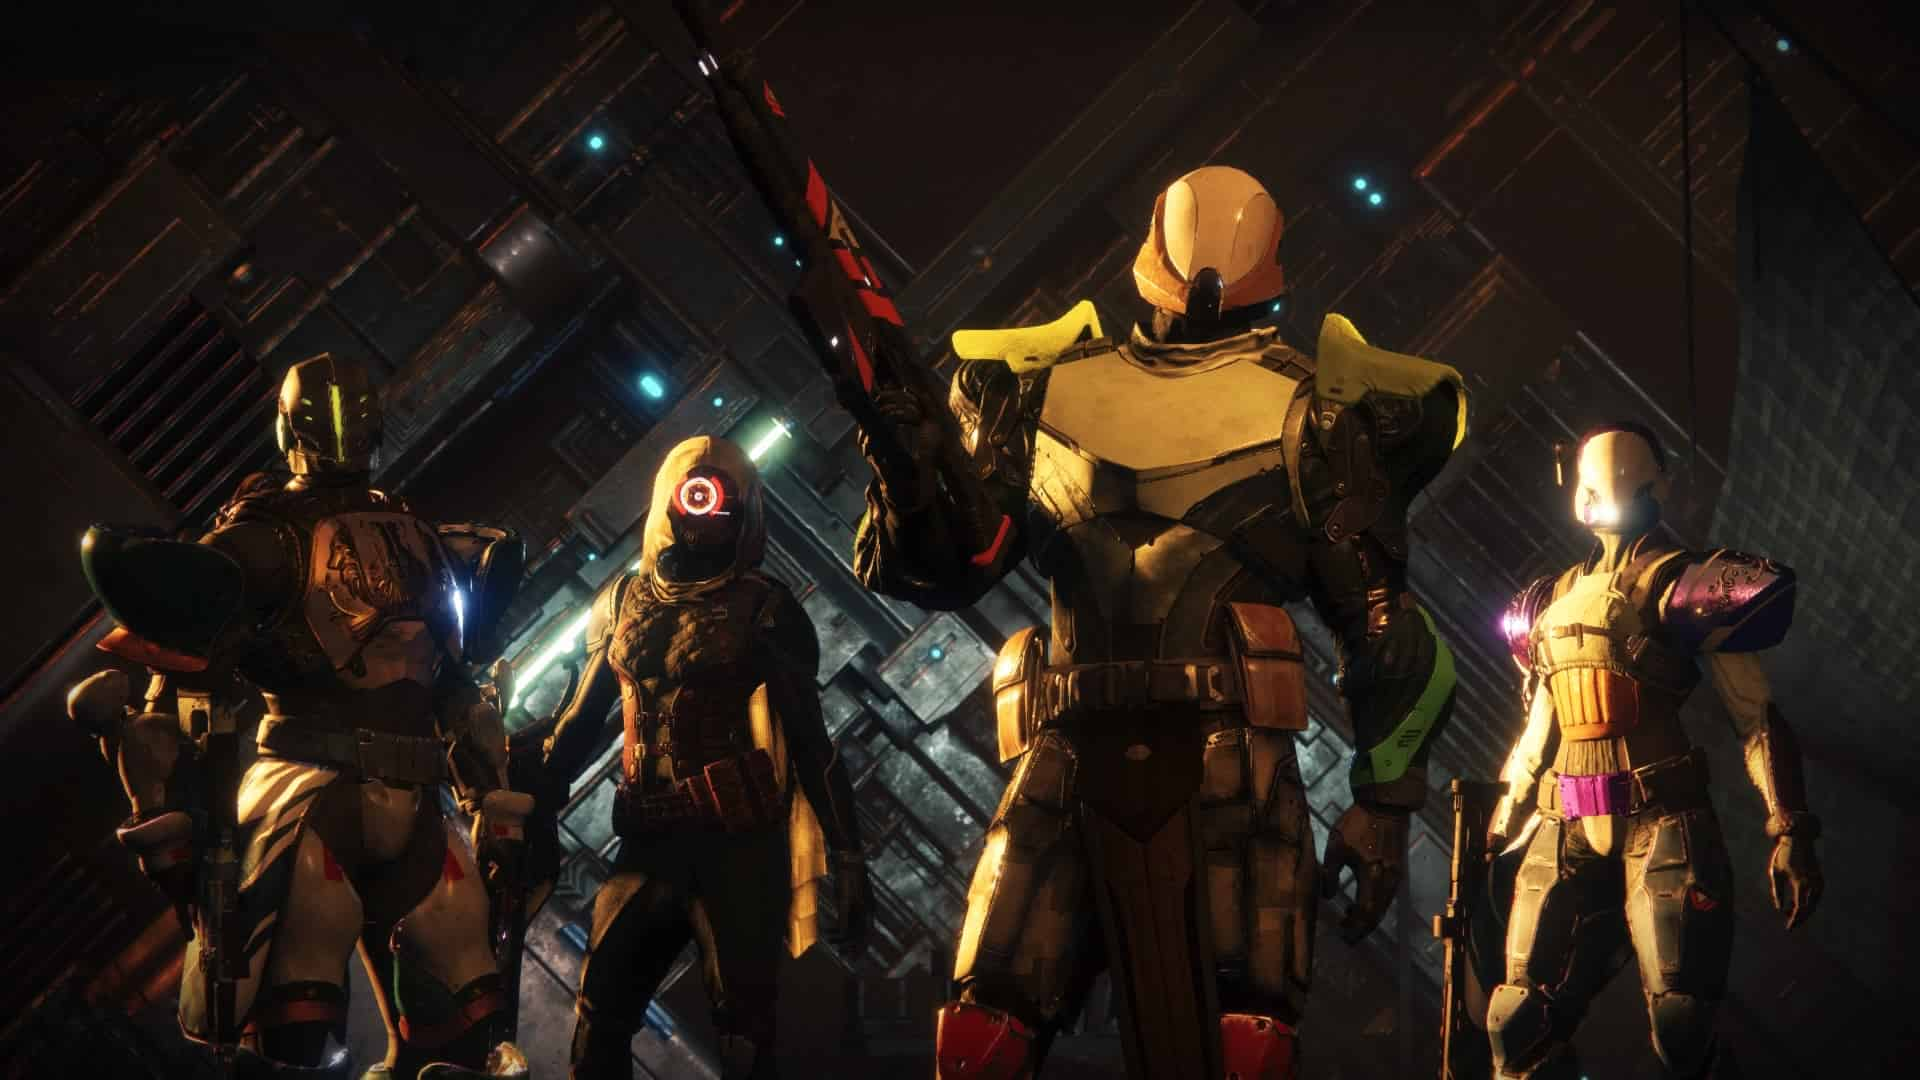 Destiny 2 Weekly Reset August 6, 2019 - Weekly Rewards and